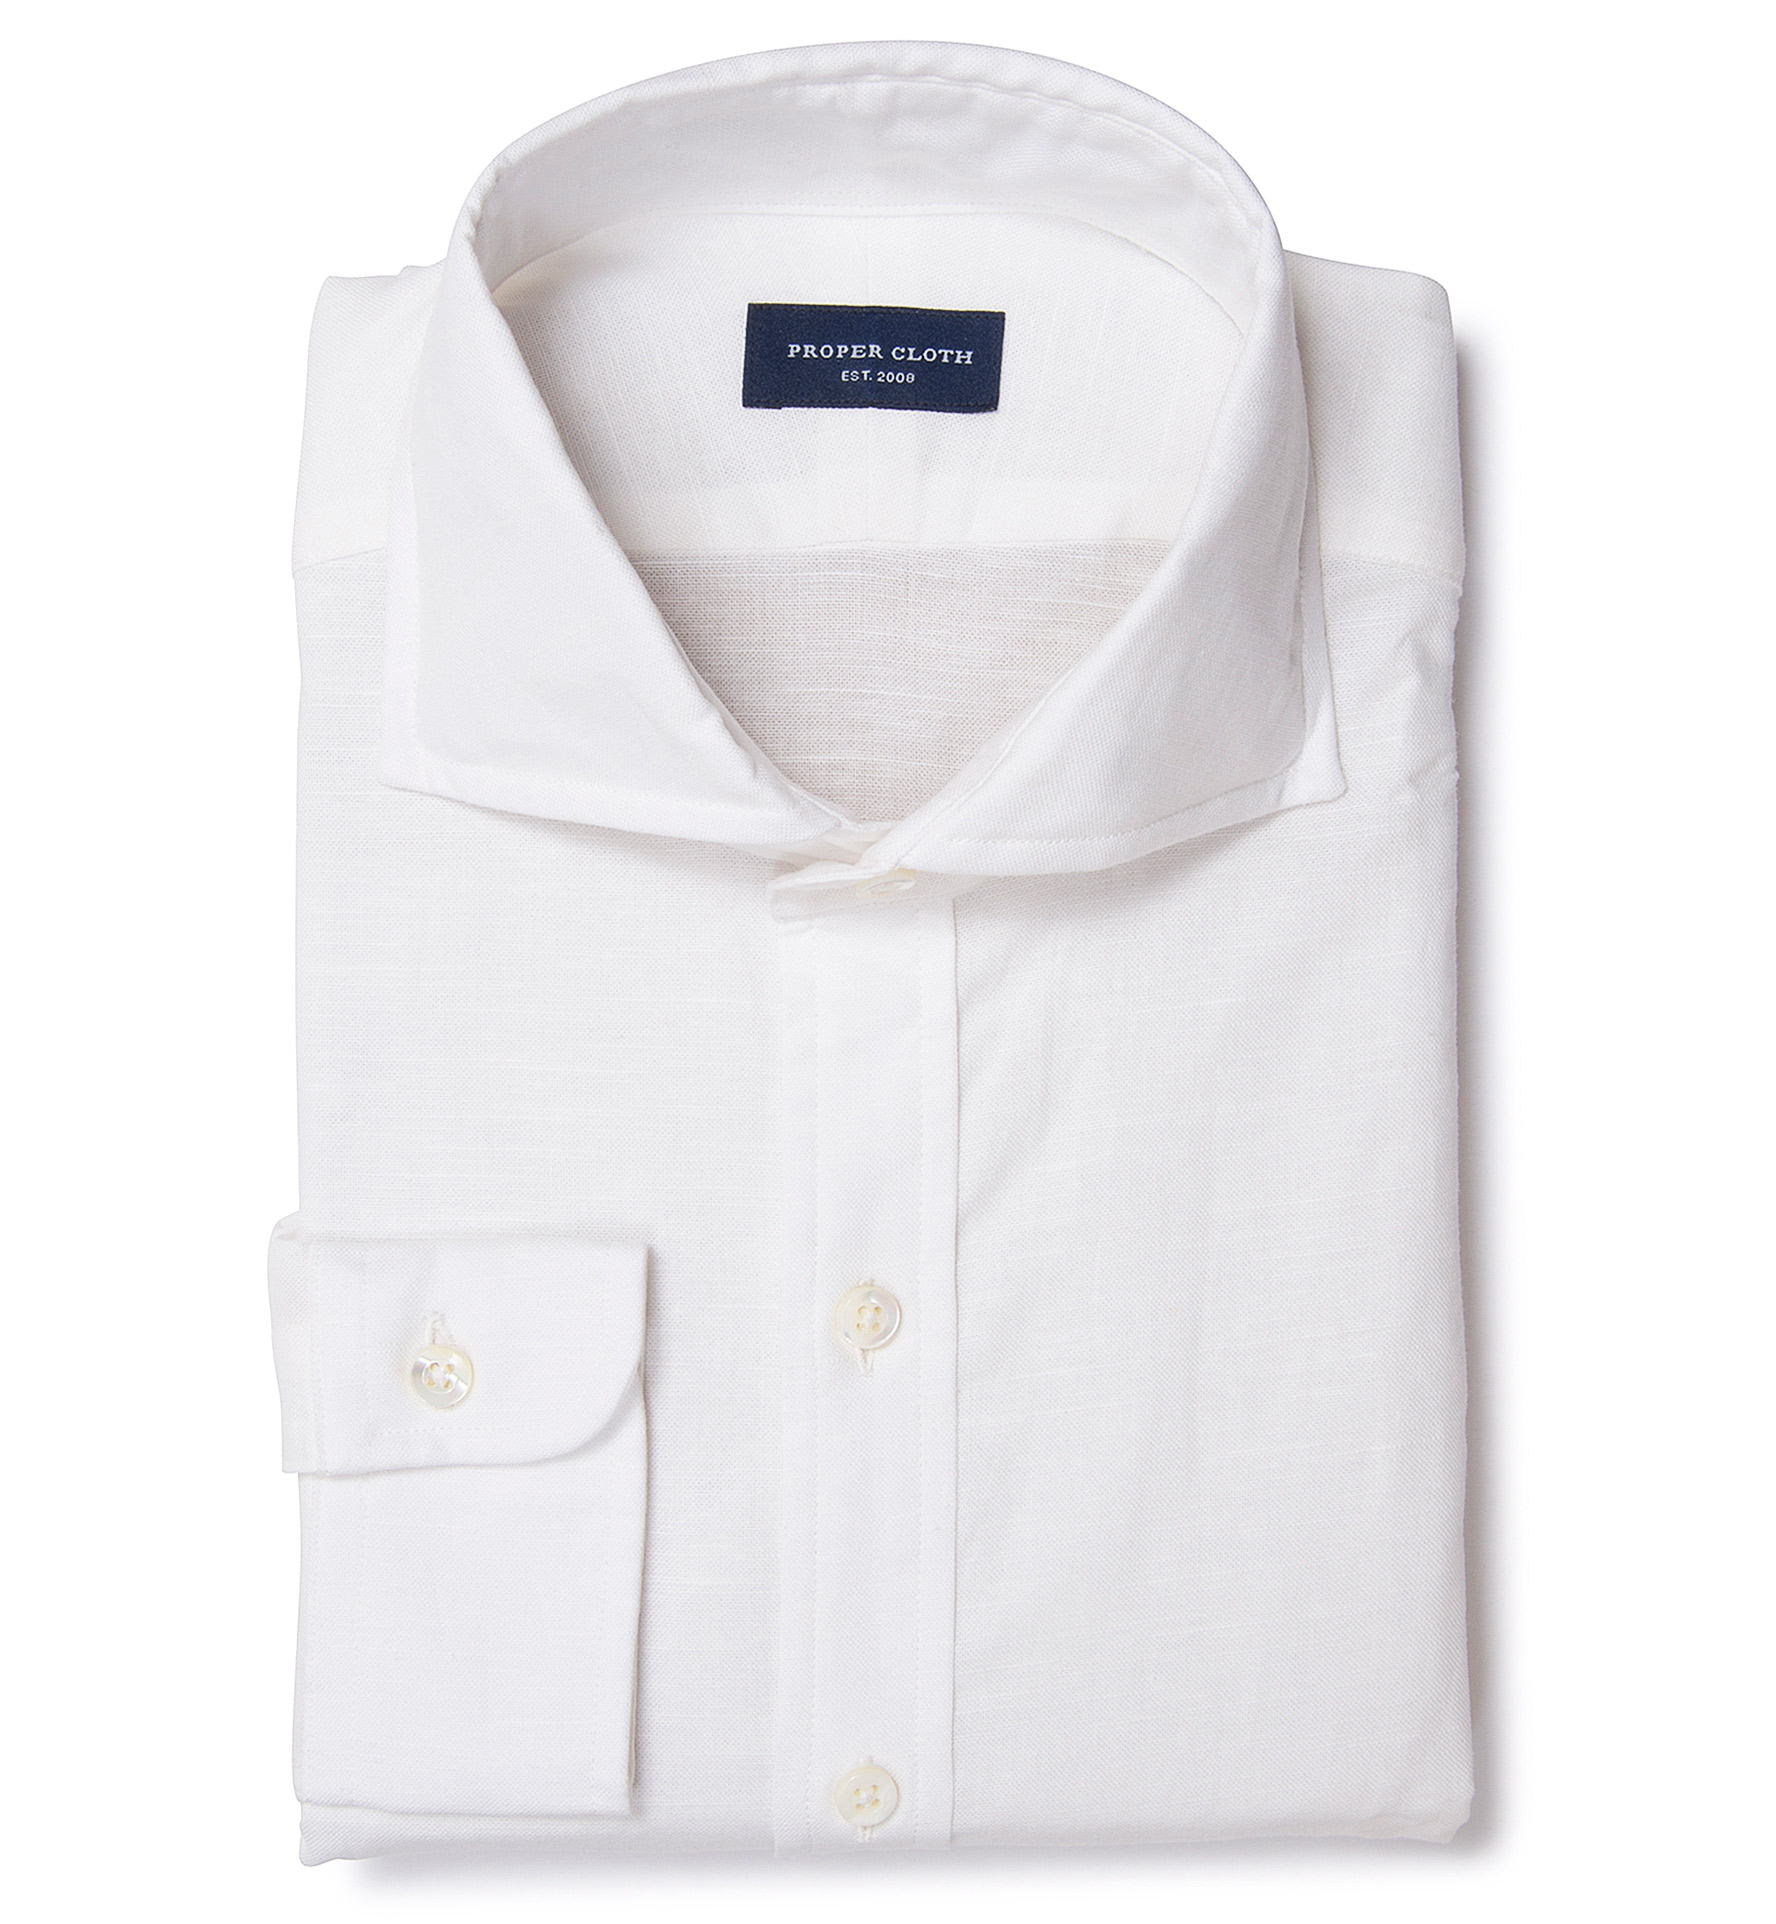 Natural White Cotton Linen Shirts by Proper Cloth